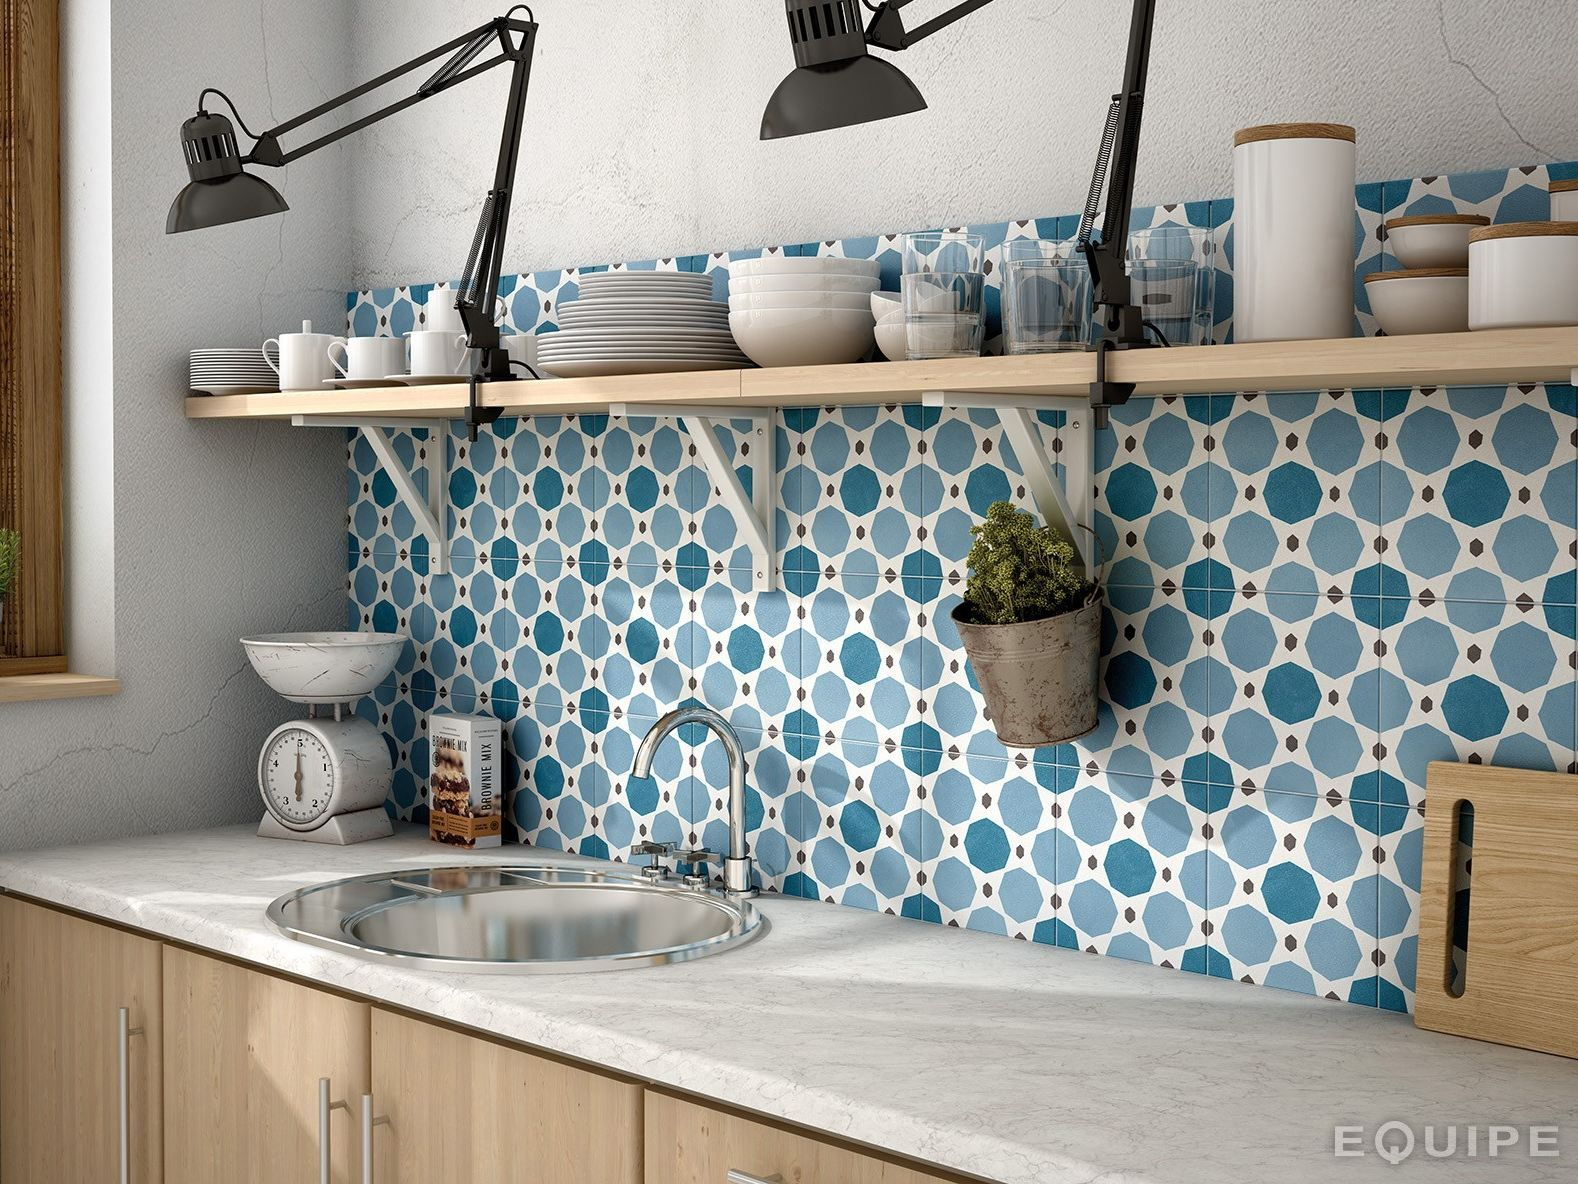 Ceramic wall/floor tiles CAPRICE DECO by EQUIPE CERAMICAS ...